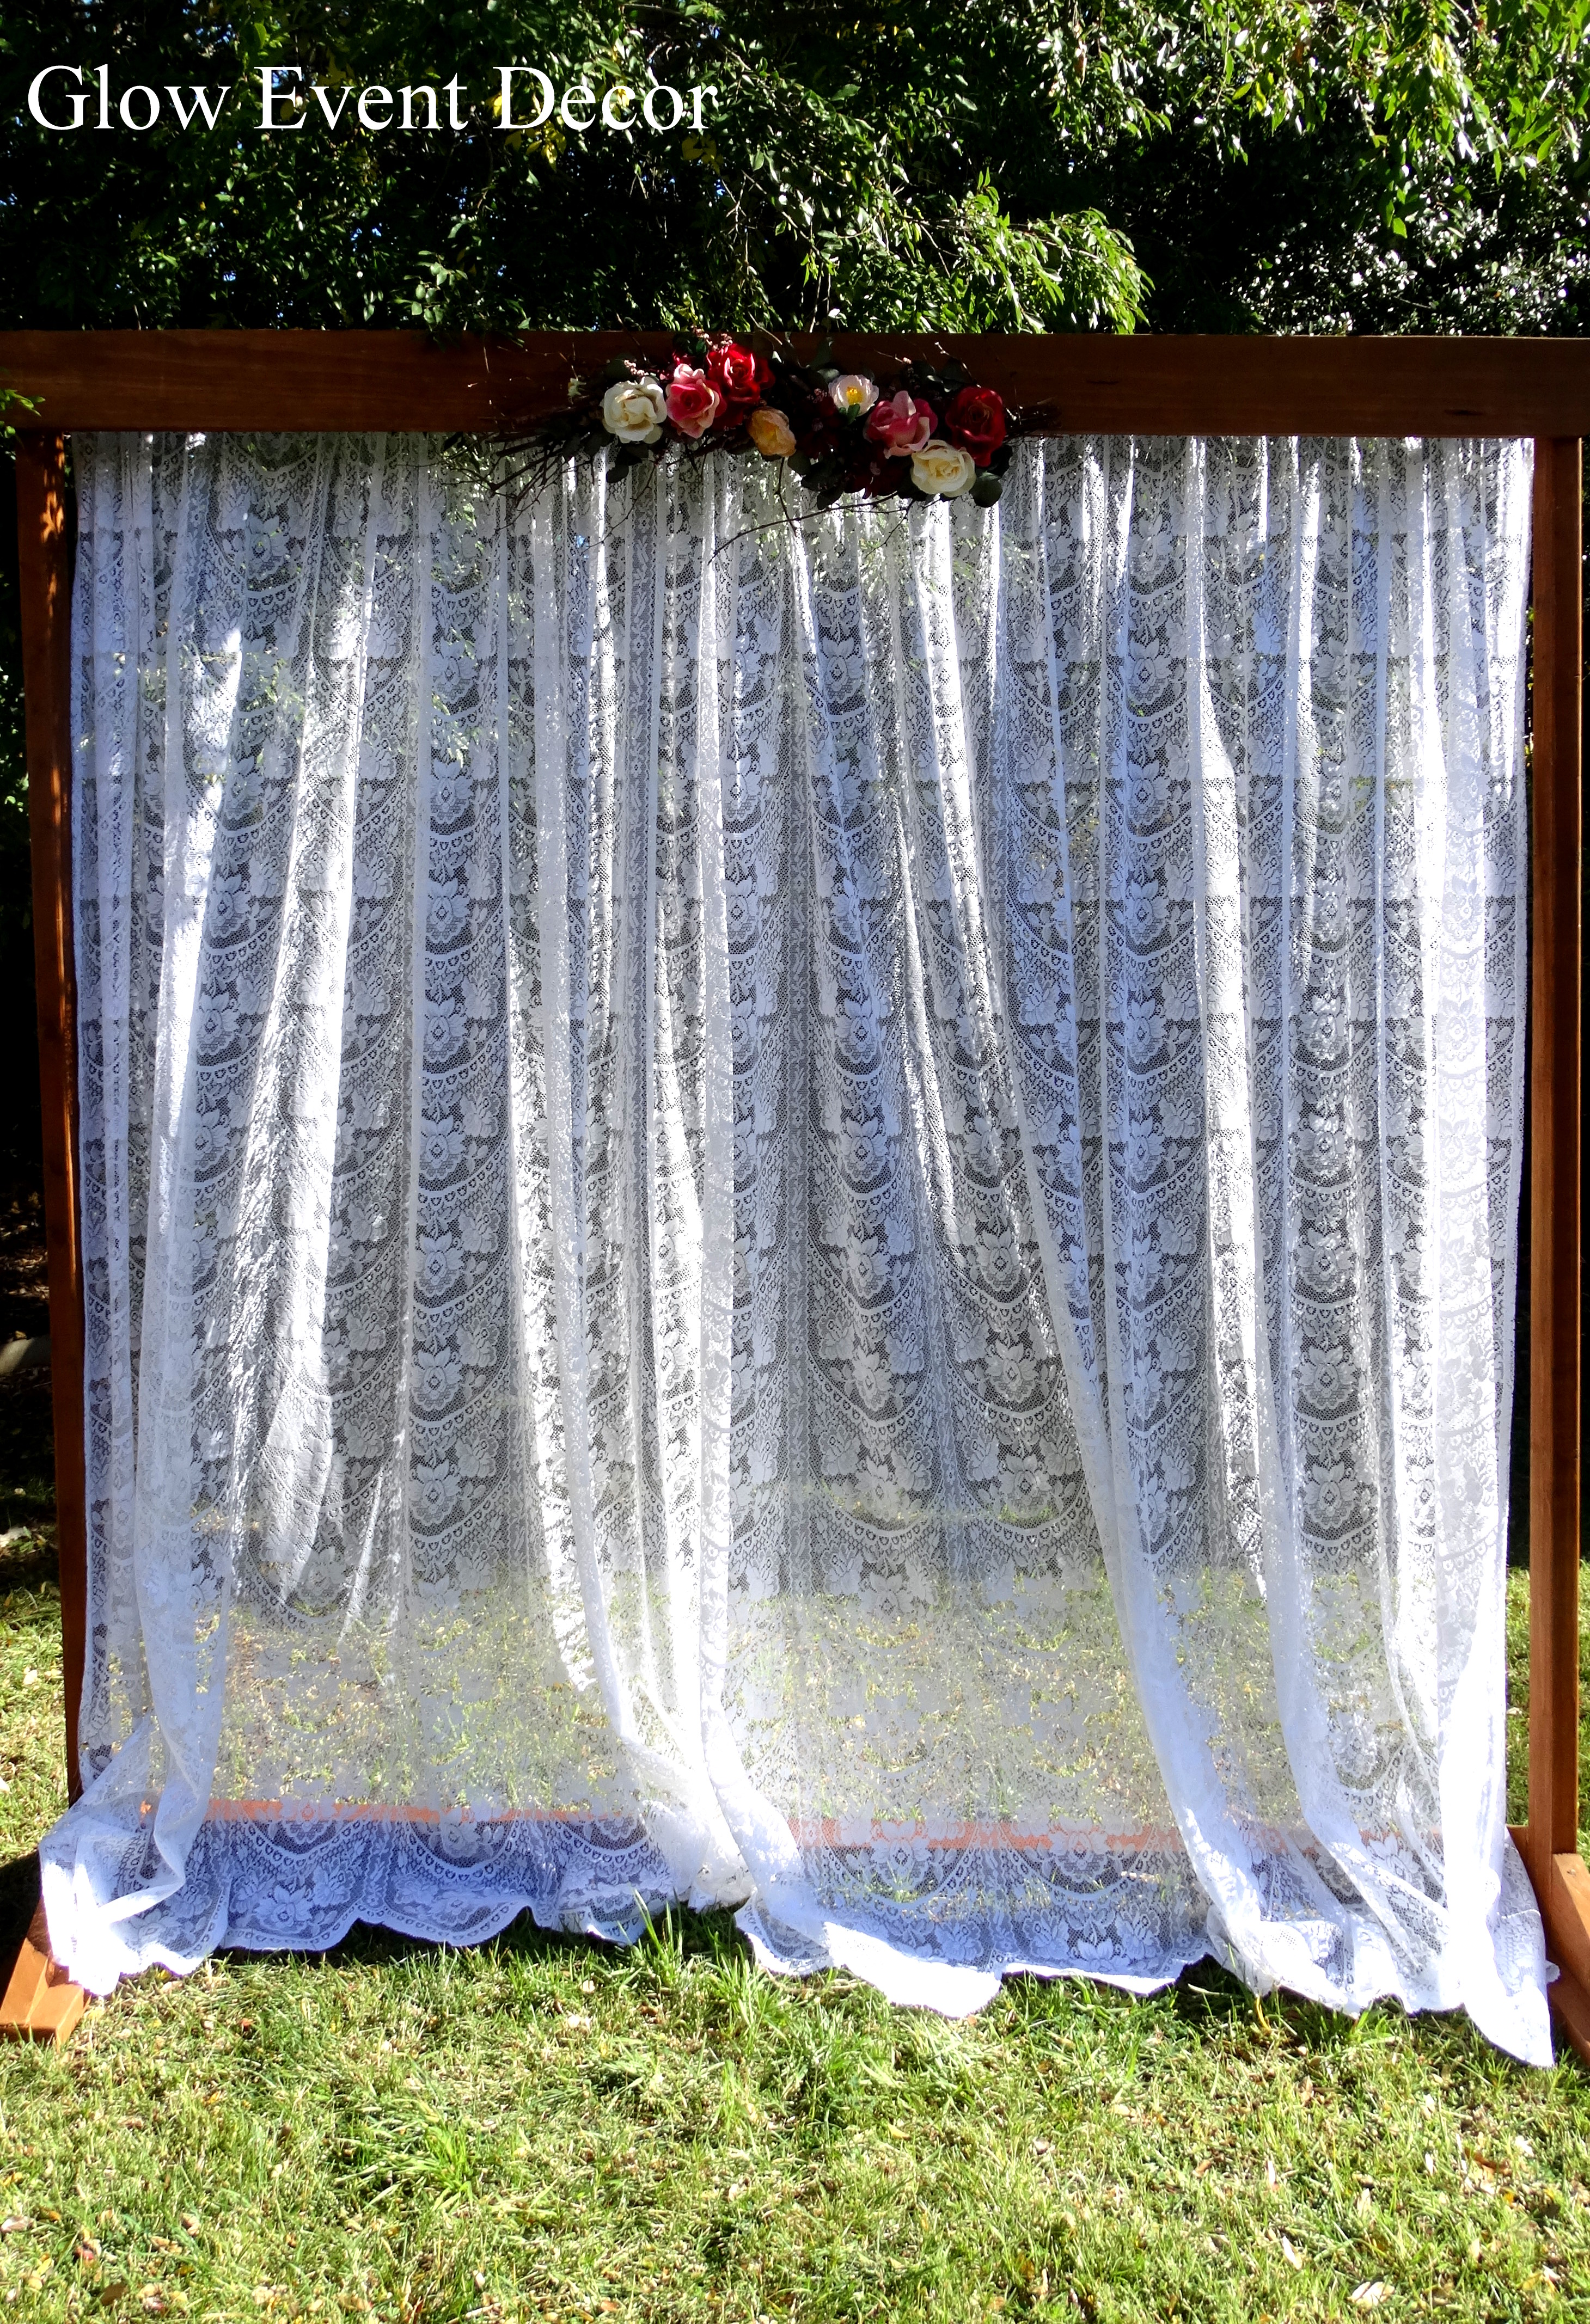 2m Freestanding Wooden Arch For Wedding Ceremony With Lace Curtain And Flower Swag Diy Hire